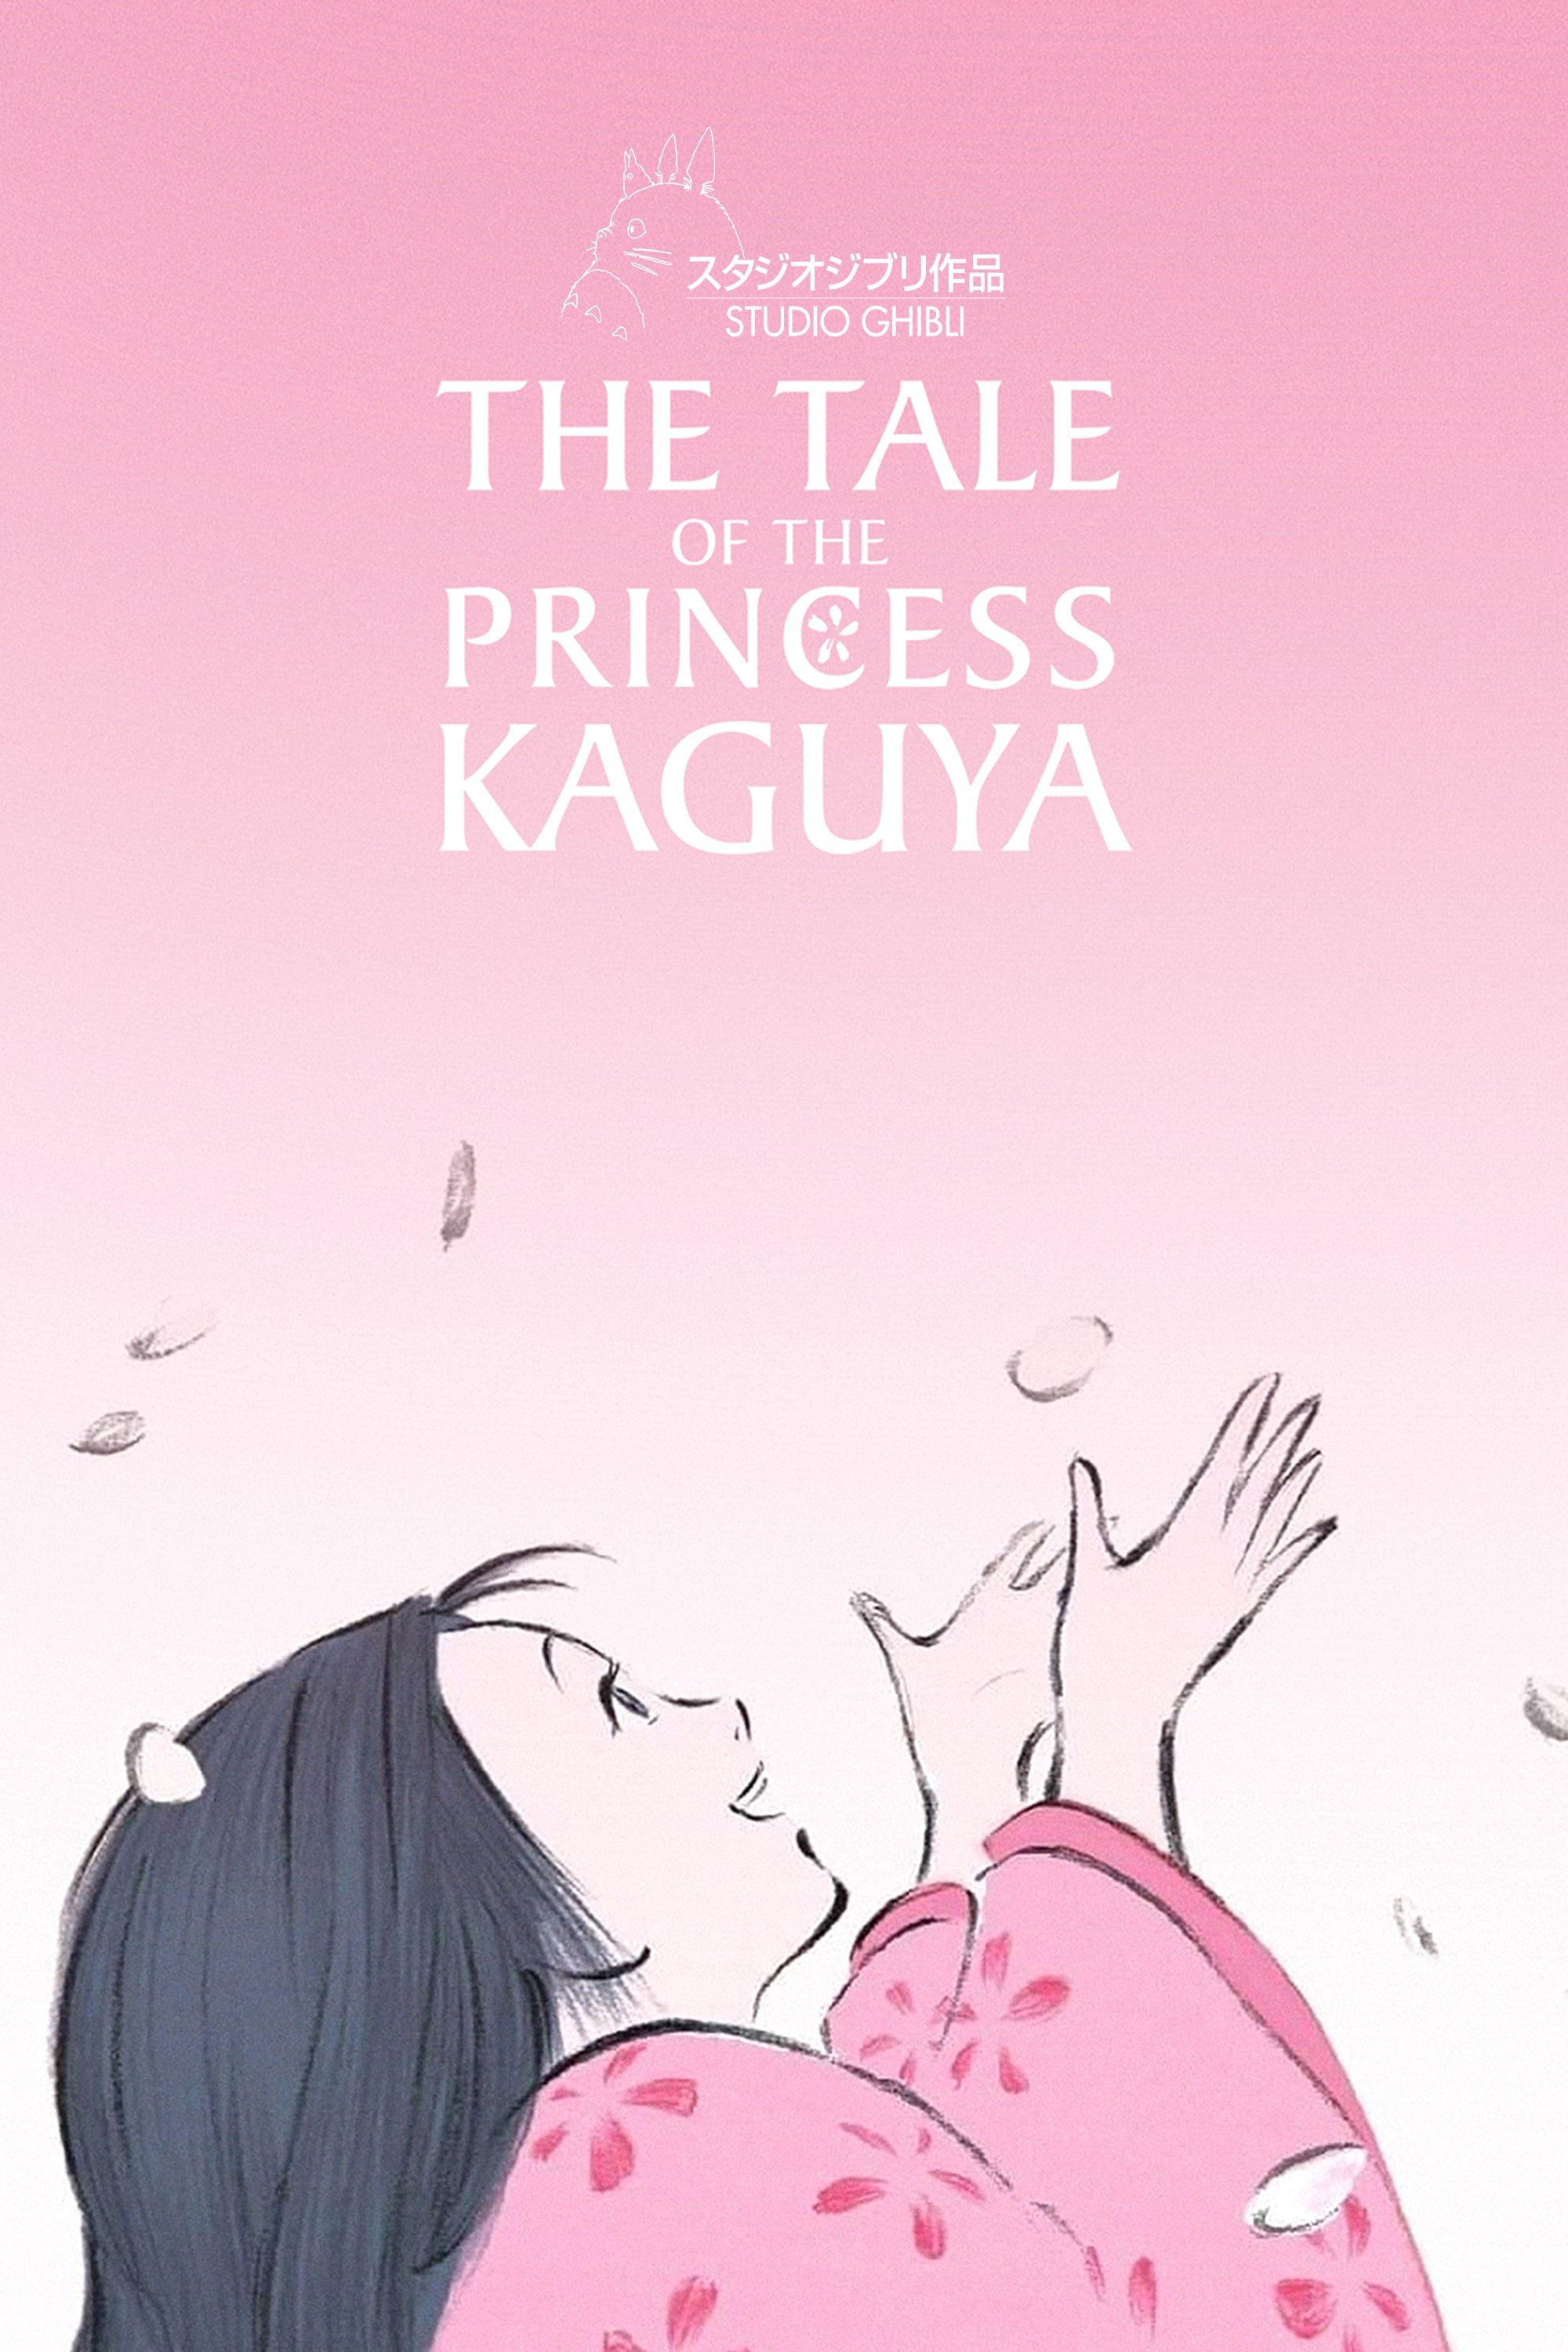 The Tale of the Princess Kaguya Full HD Sub (English